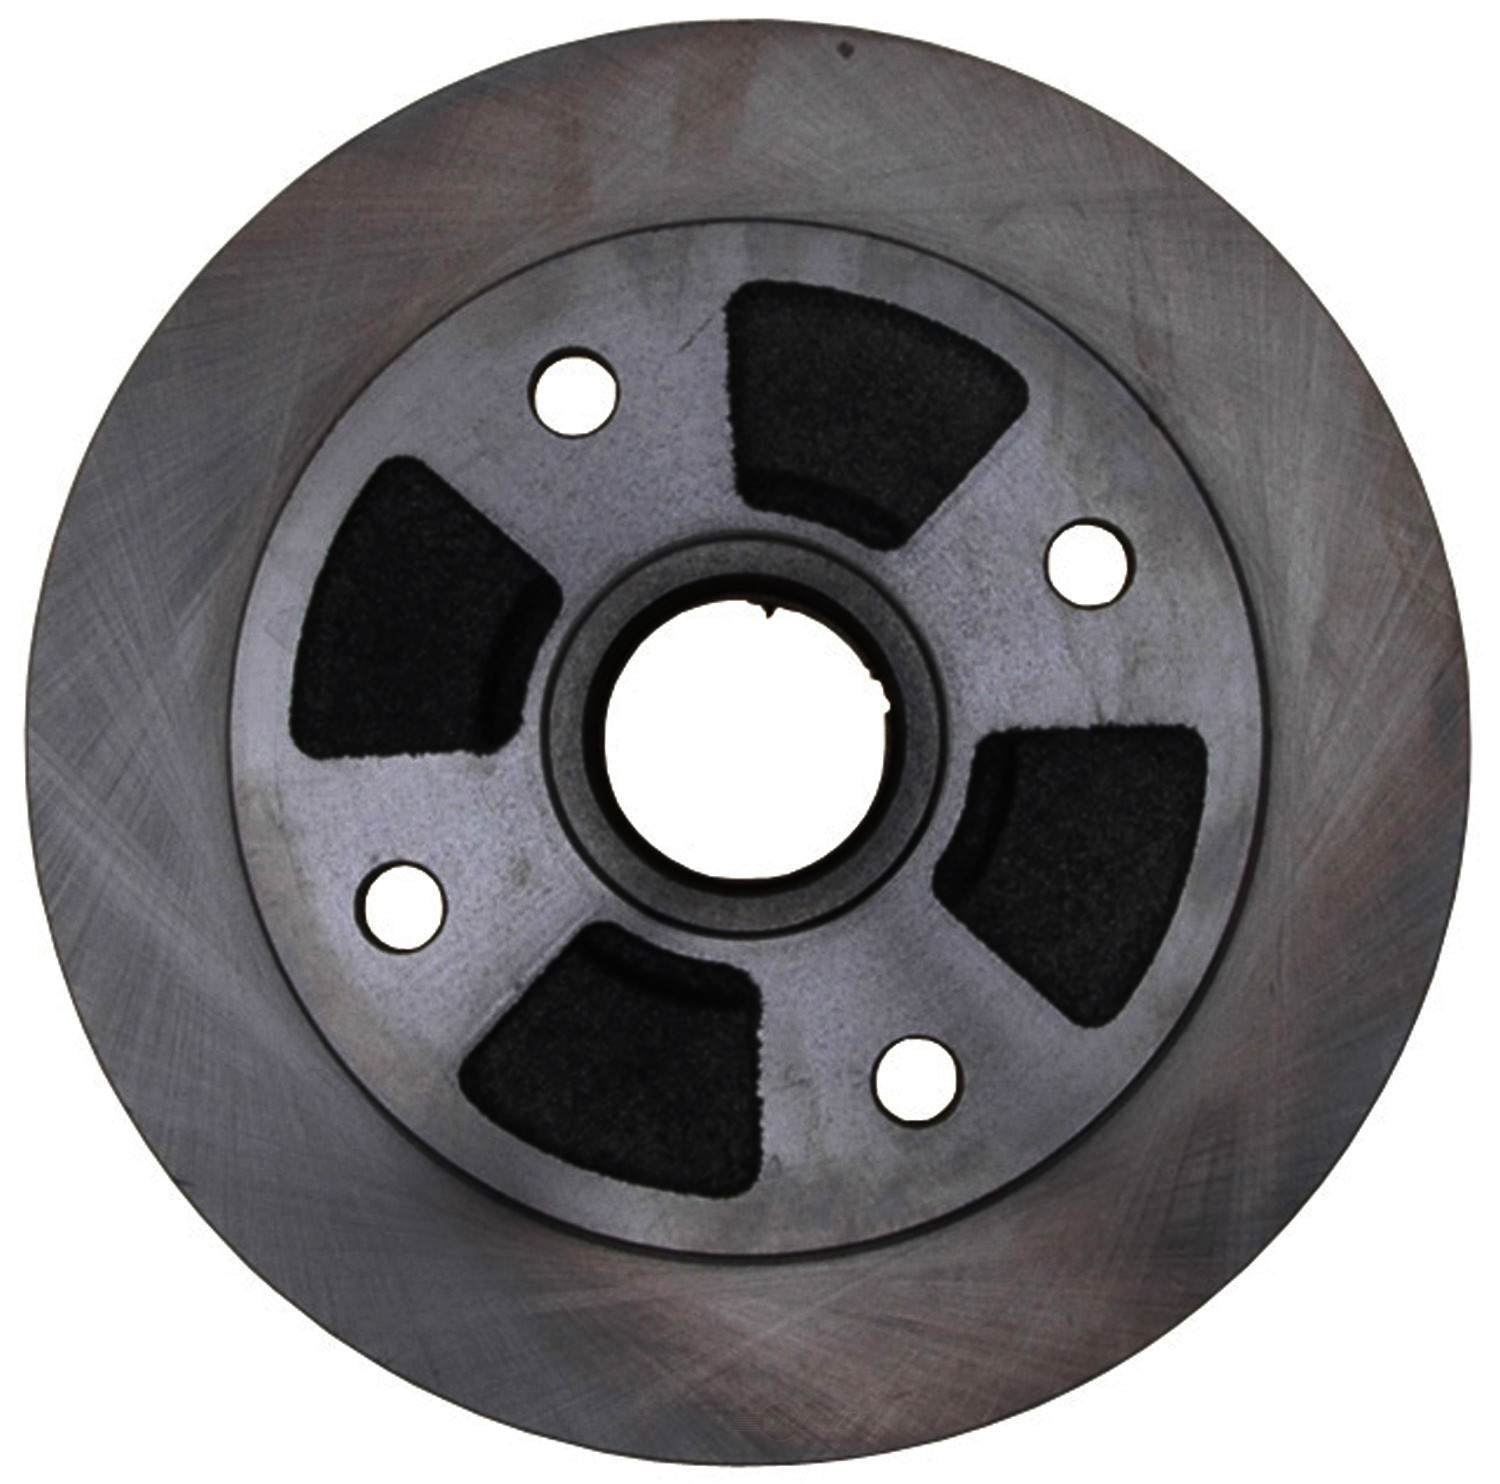 ACDELCO ADVANTAGE - Non-Coated Disc Brake Rotor & Hub Assembly - DCD 18A369A